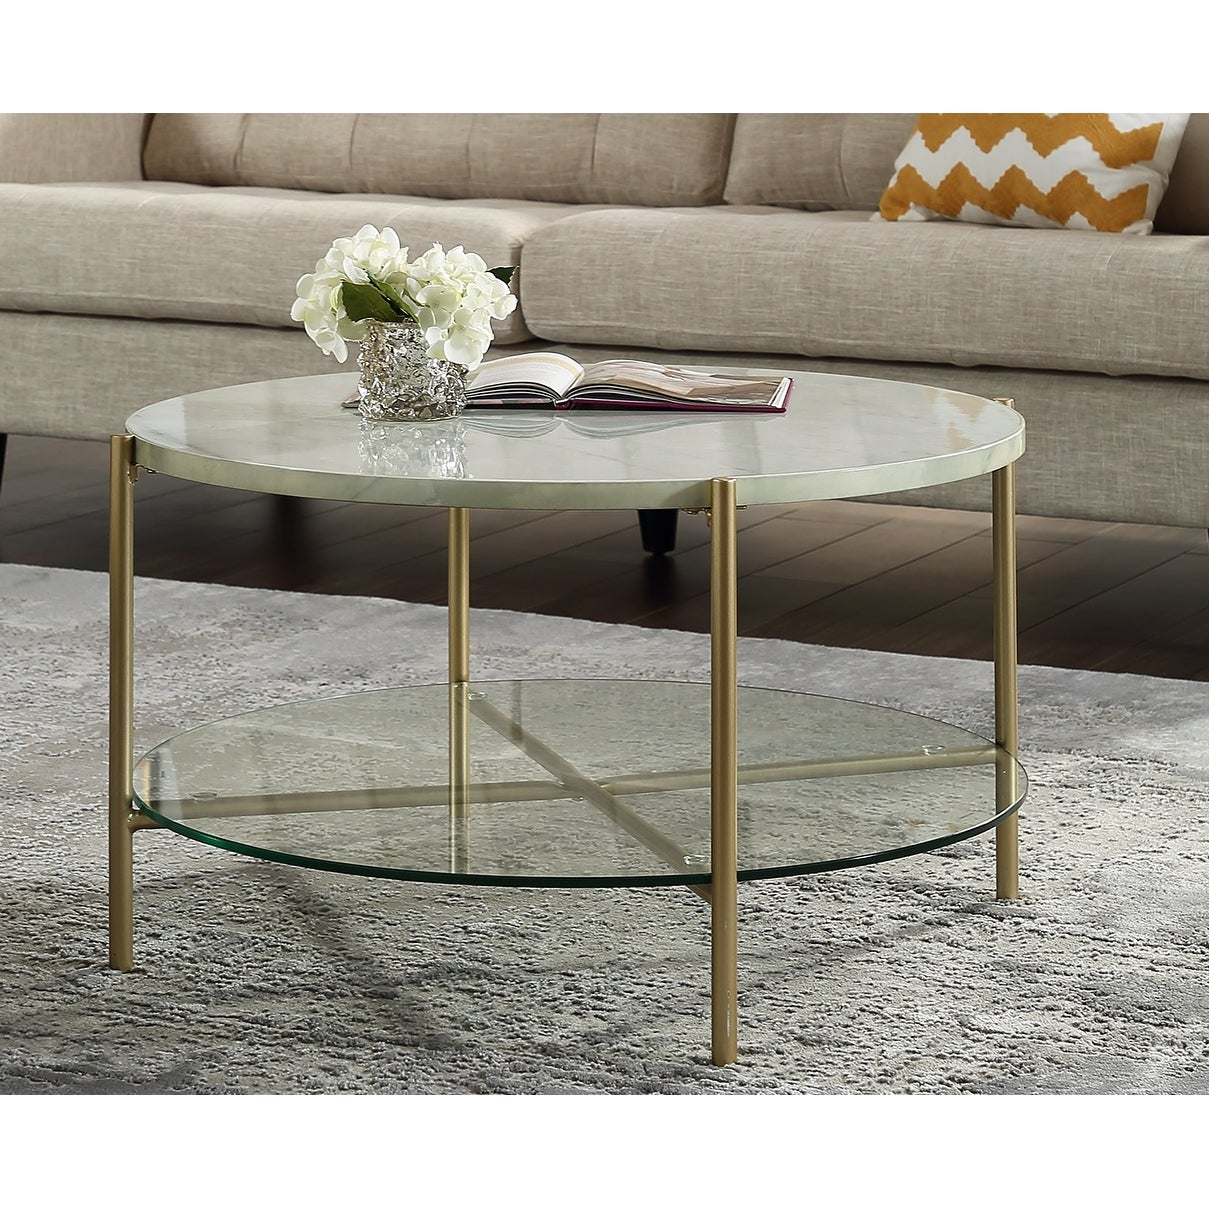 Silver Orchid Howell Faux Marble Round Coffee Table Overstock 22536520